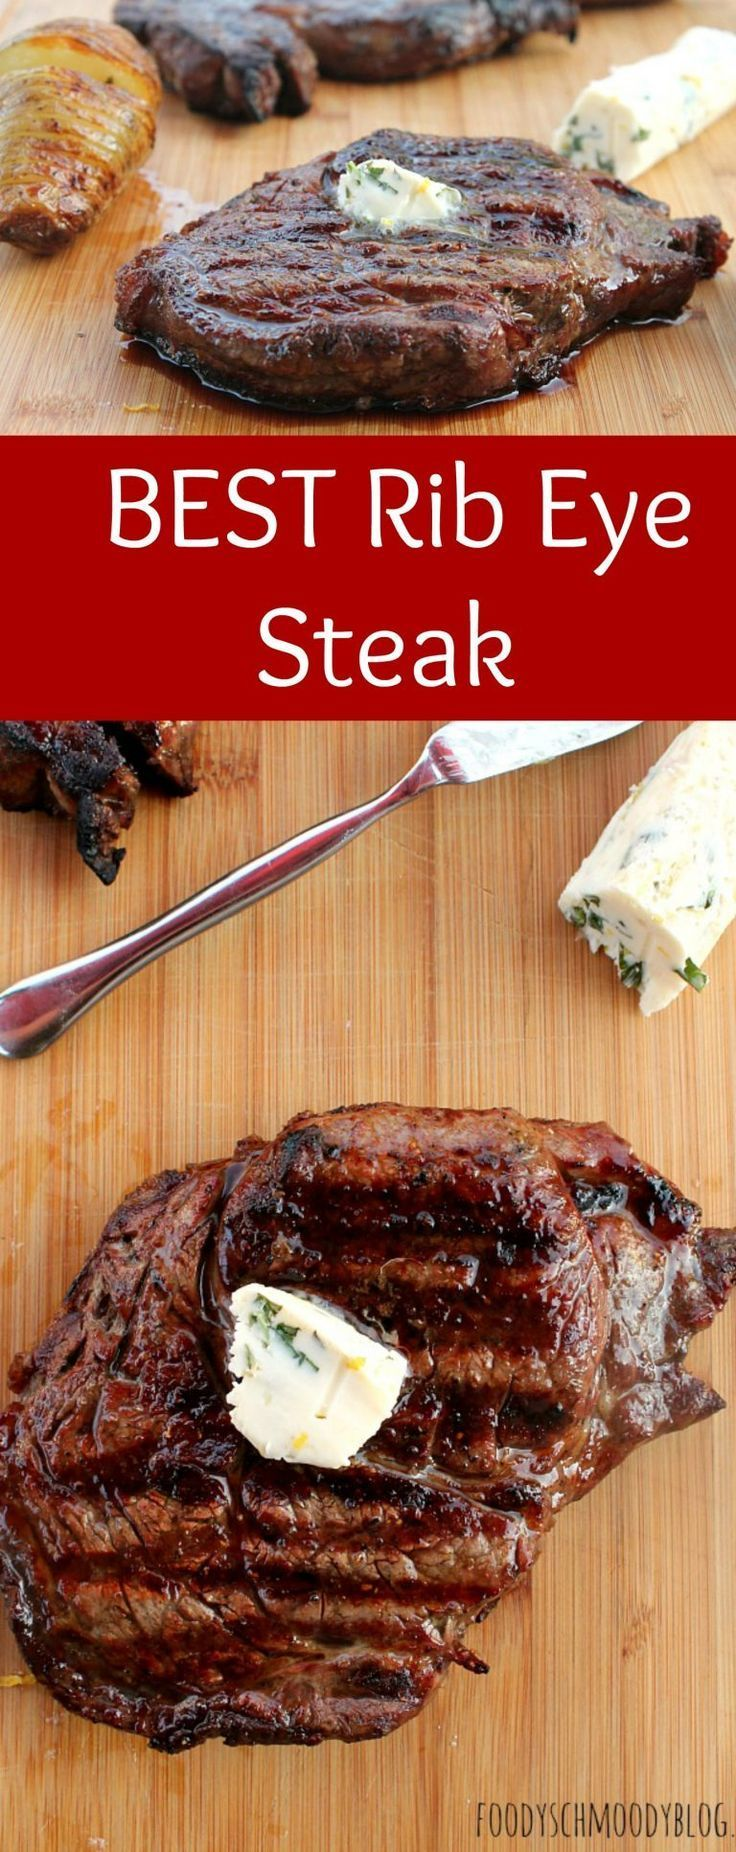 BEST Rib eye Steak recipe. It's tender and juicy and full of flavor! Just a few easy ingredients and a grill is all you need for this one and only needed Rib Eye Steak Recipe!